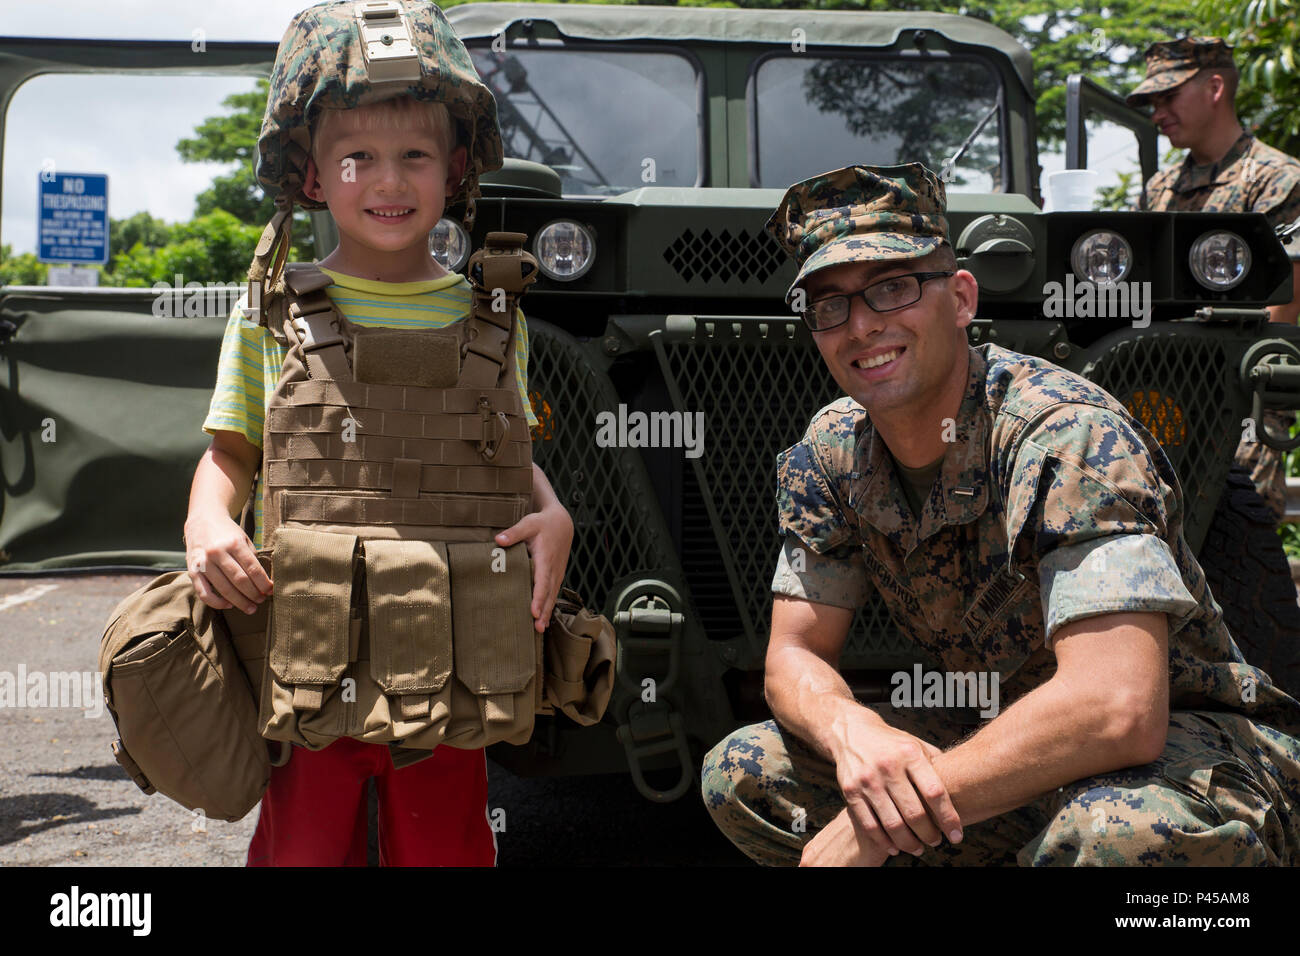 """KANEOHE, Hawaii – 1st Lt. Jacob Richardson, the headquarters platoon commander for Alpha Battery, 1st Battalion, 12th Marine Regiment and a Collierville, Tenn., native, poses for a photo with a child wearing a flak jacket and kevlar helmet during a """"Meet the Community Heroes"""" event at the Kaneohe Public Library in Kaneohe, Hawaii, June 23, 2016. The Marines were given the opportunity to interact with children and parents from the community. Children got the chance to meet police officers, firefighters and Marines. Multiple vehicles from the organizations were on display for all the children to - Stock Image"""